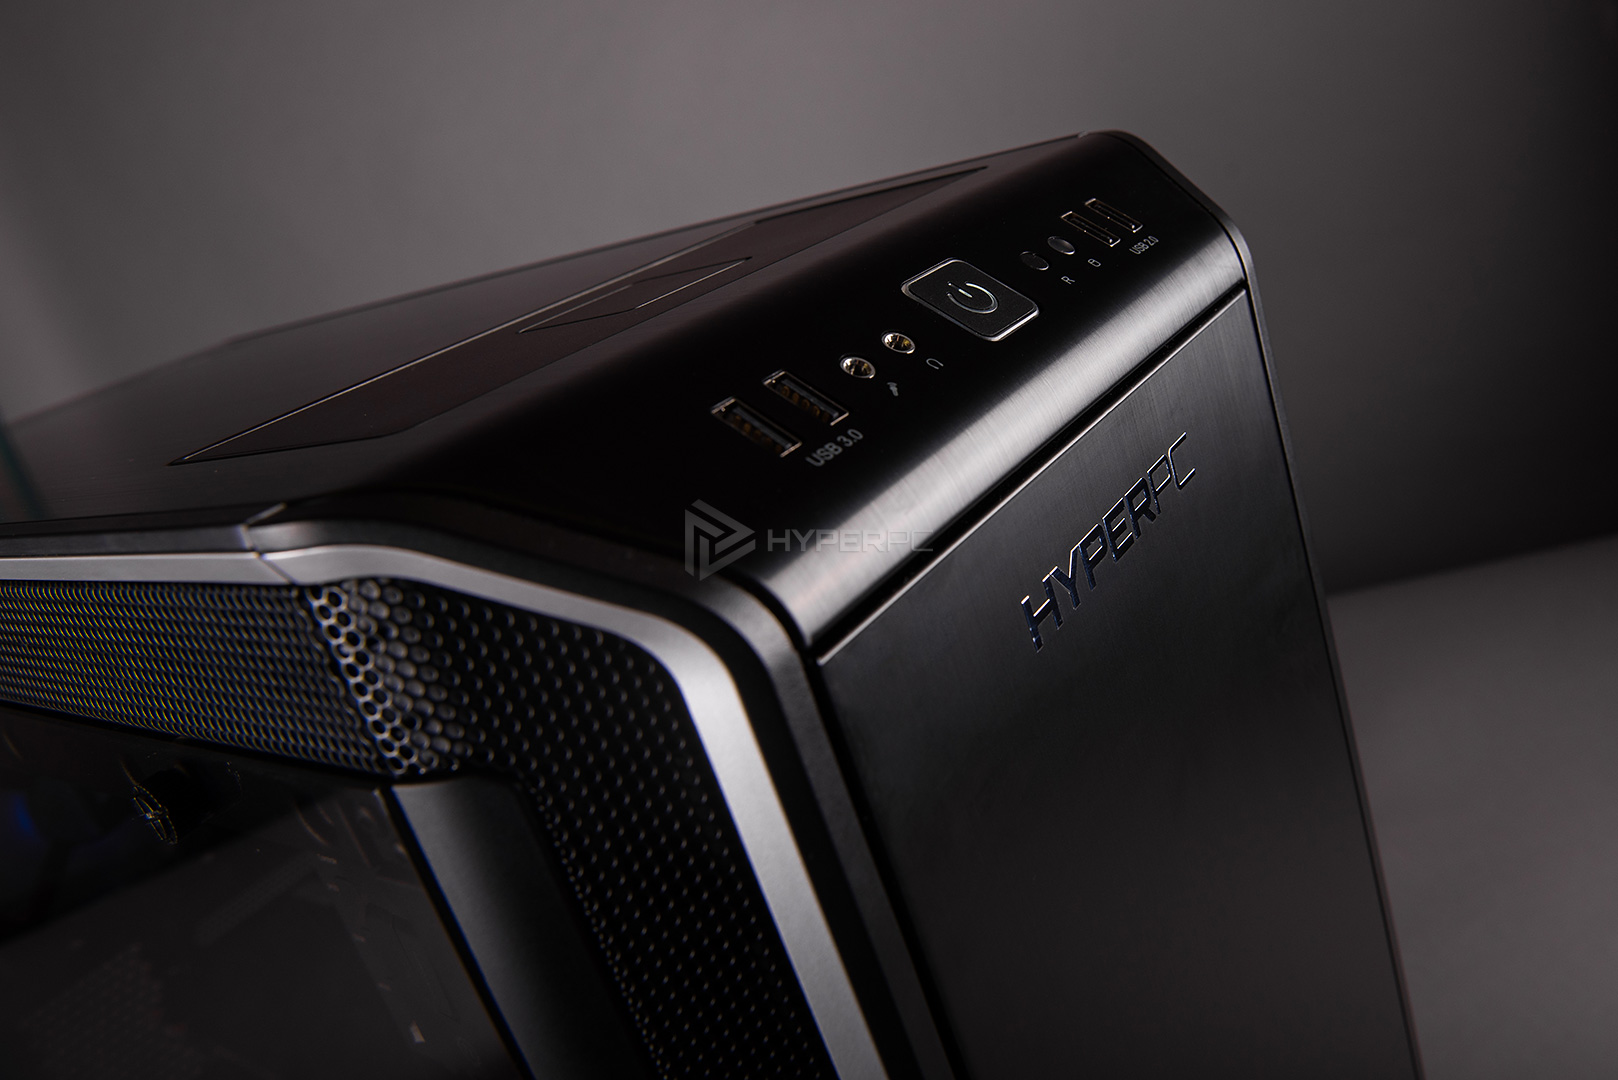 be quiet dark base 900 pro water cooling photo 05